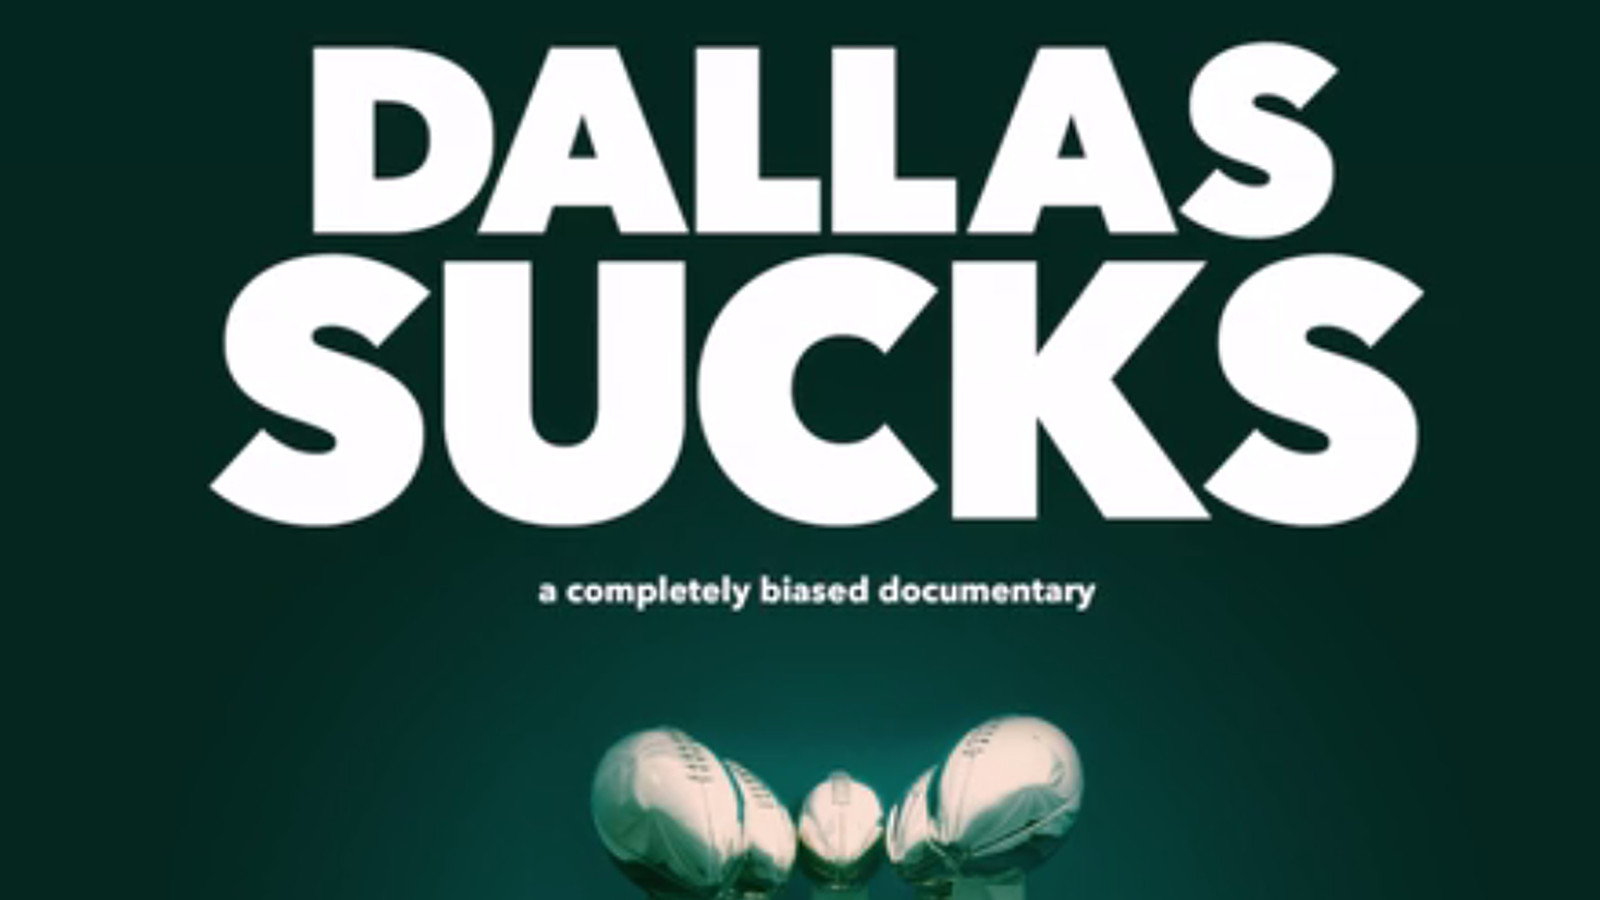 Dallas Cowboys Roster >> Eagles fans can support the 'Dallas Sucks' documentary - Bleeding Green Nation